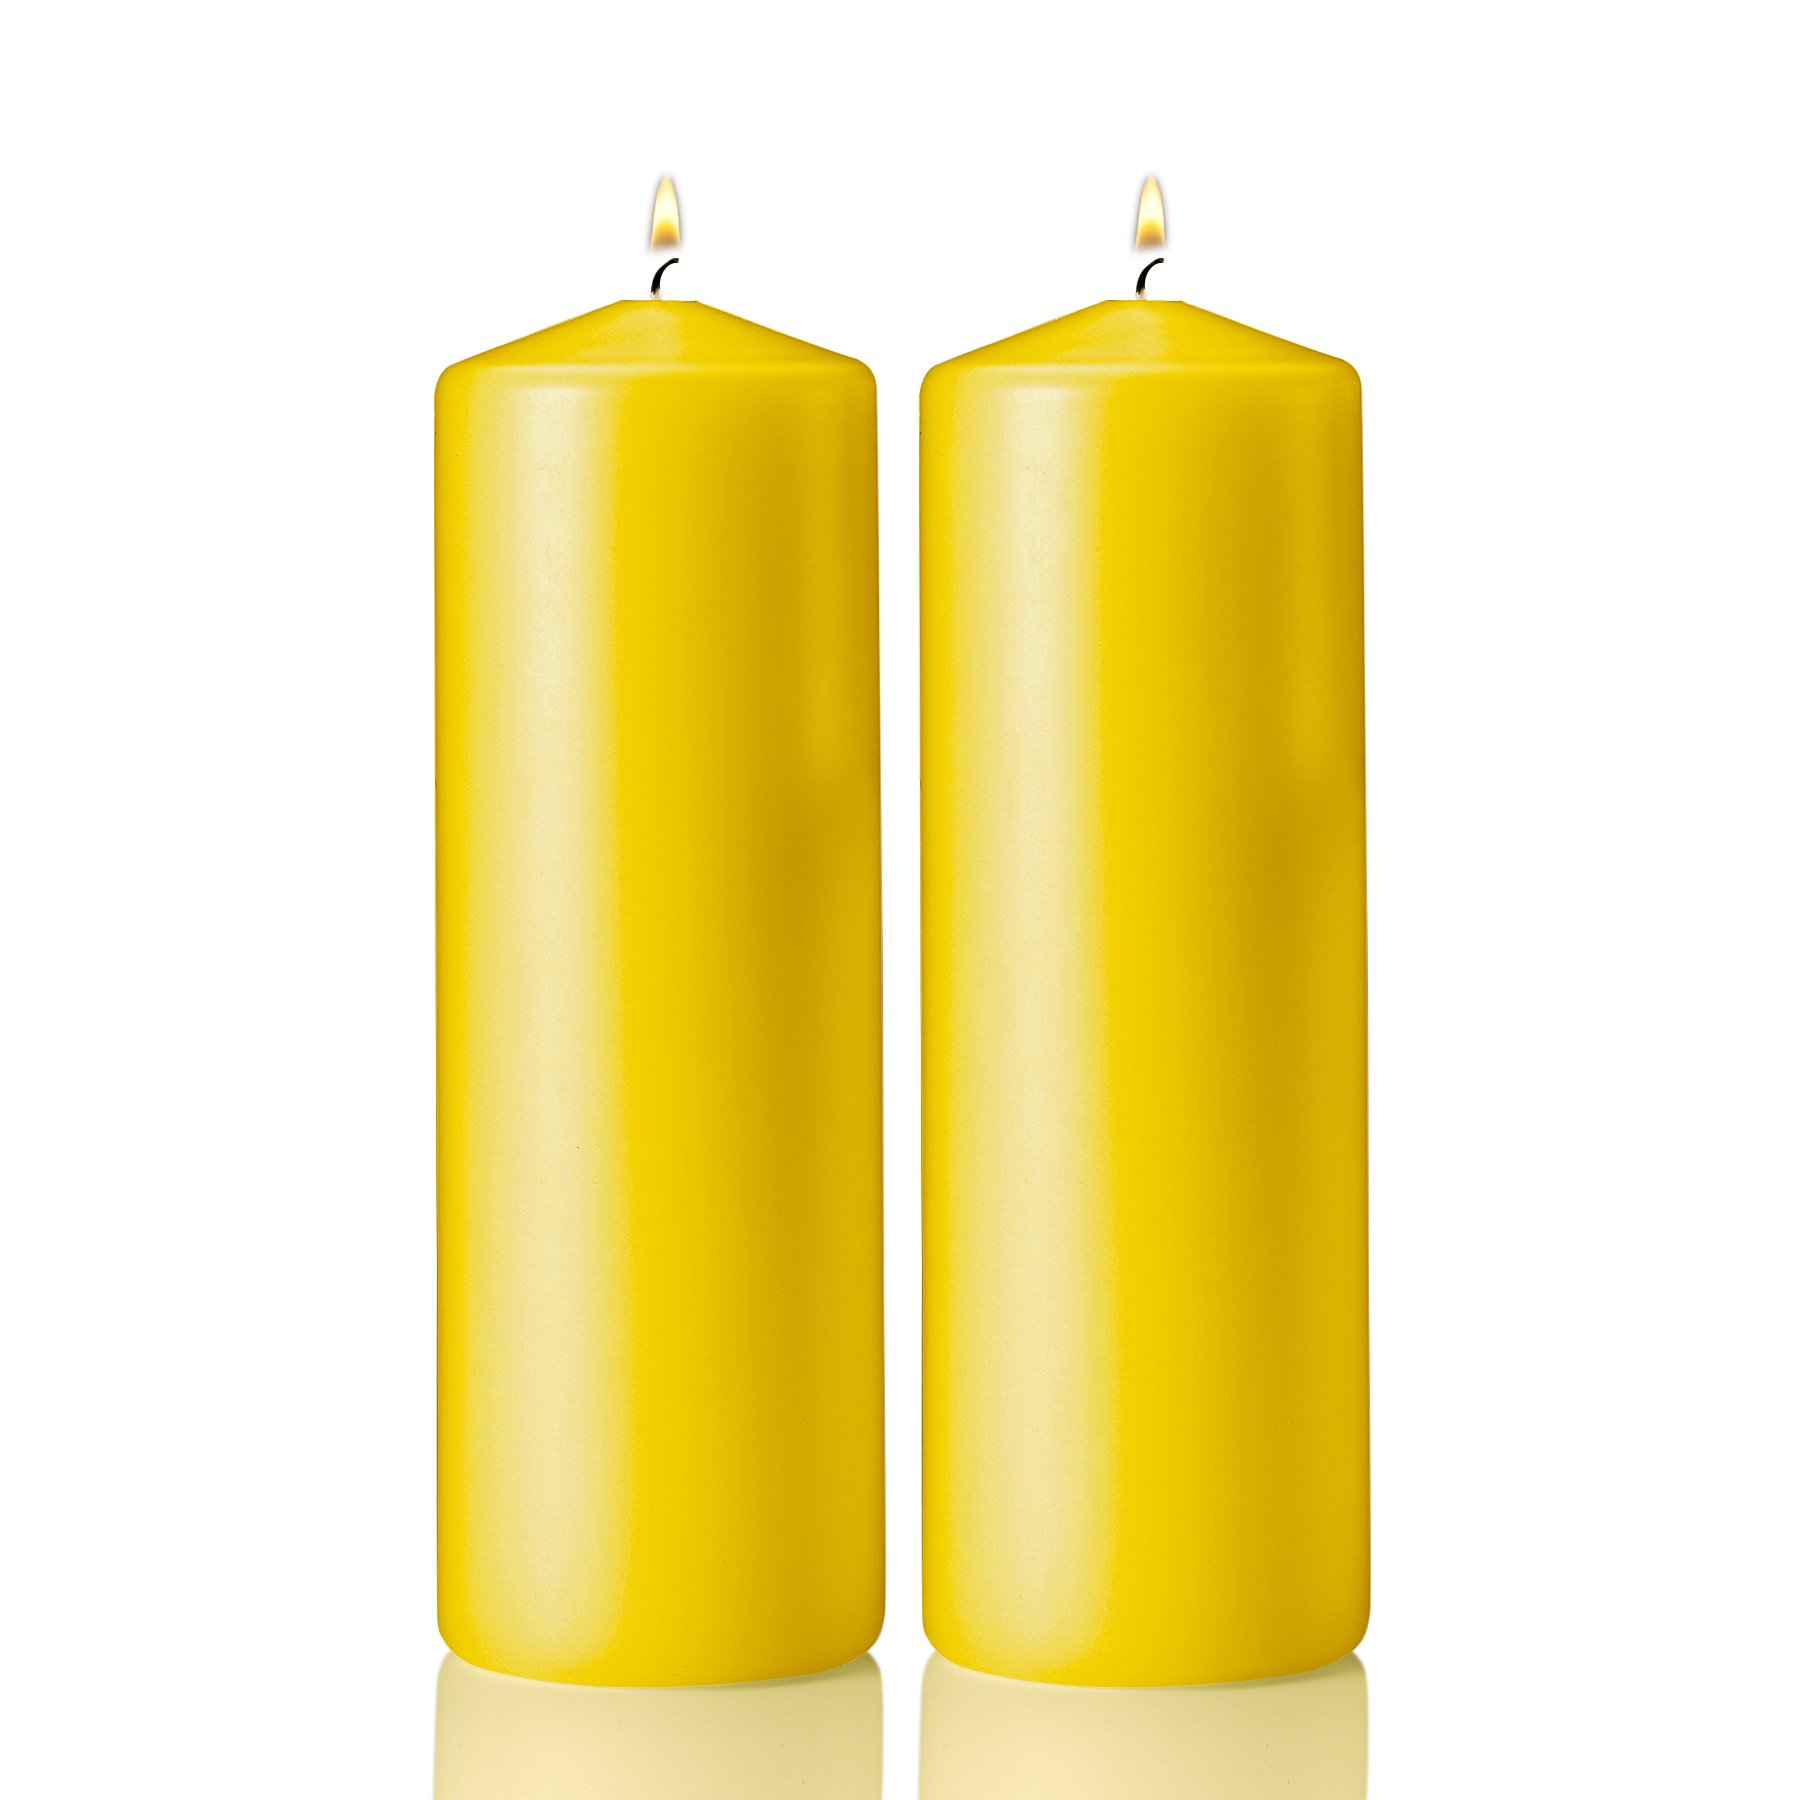 Light In the Dark Pillar Citronella Candle - Set of 2 Summer Scented Citronella Candles - 9 inch Tall, 3 inch Thick - Mosquito Bug Repellent for Indoor/Outdoor Use - Made in USA by Light In the Dark